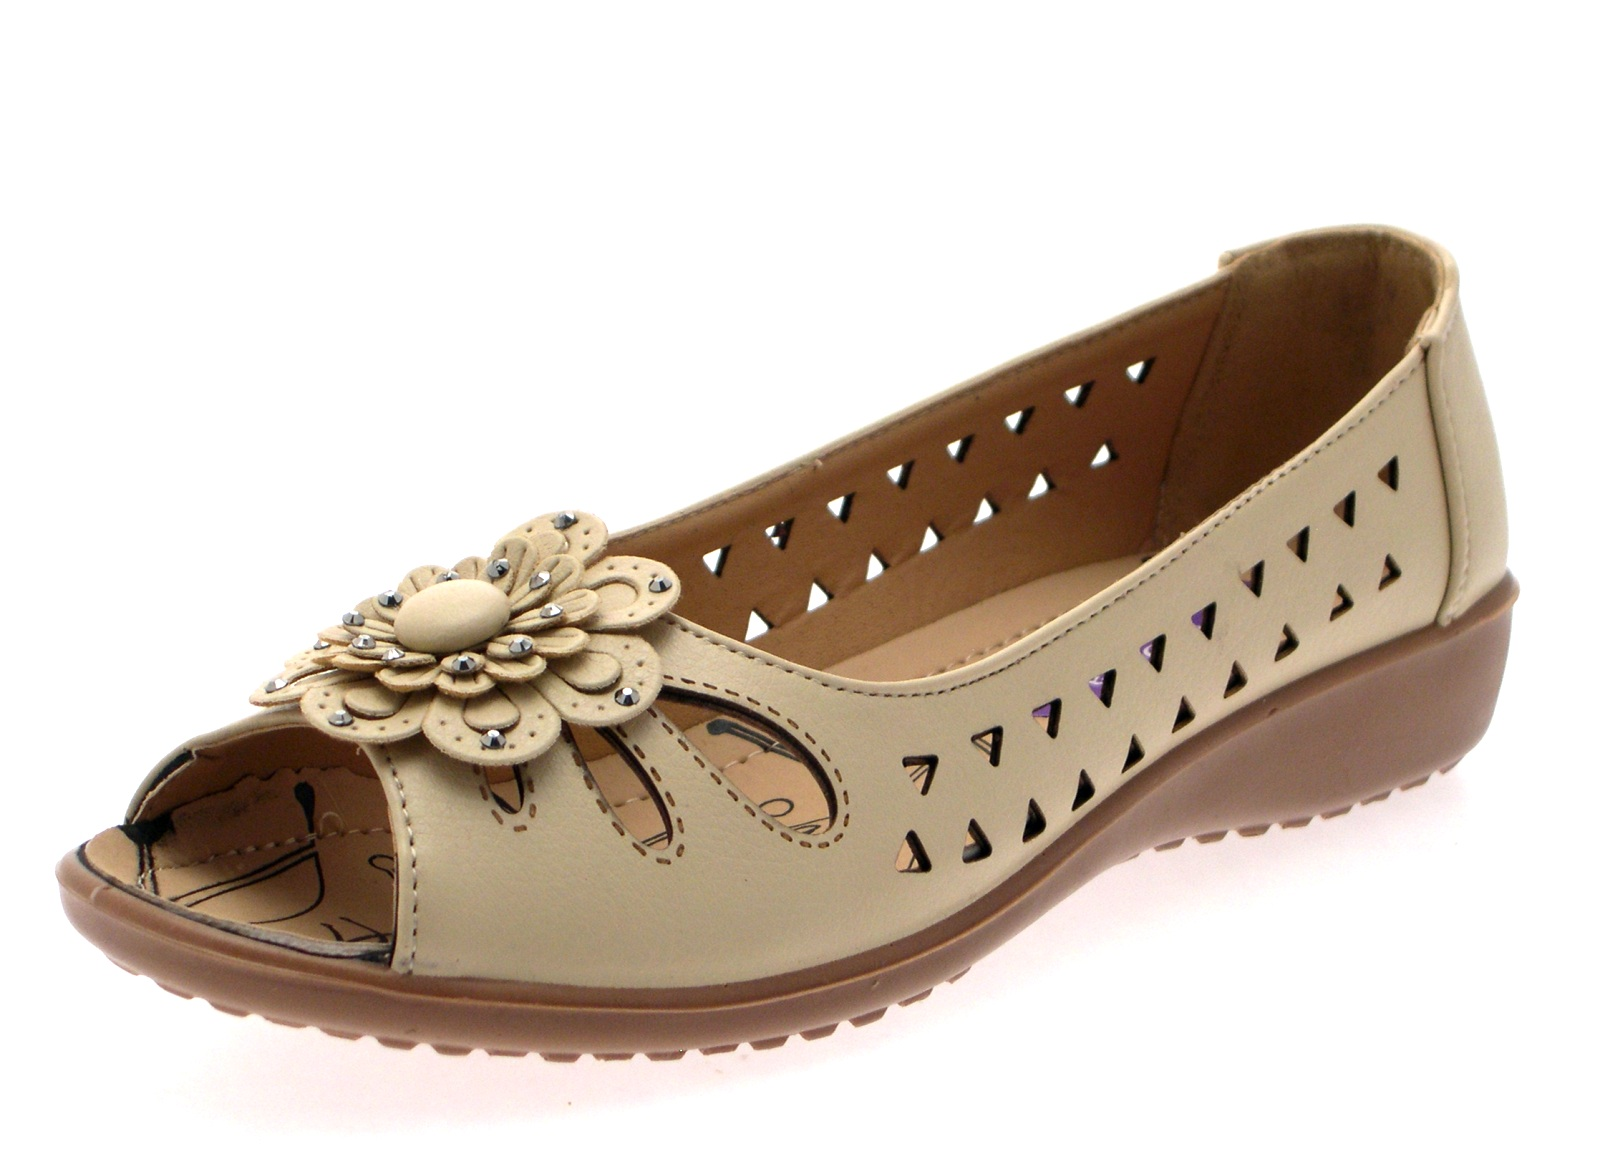 Women's Flats from coolmfilehj.cf Whether you're heading out to an important meeting, a day with the gals, or dinner with the parents, coolmfilehj.cf's large collection of women's flats makes your footwear choices easy, comfortable, and great looking.